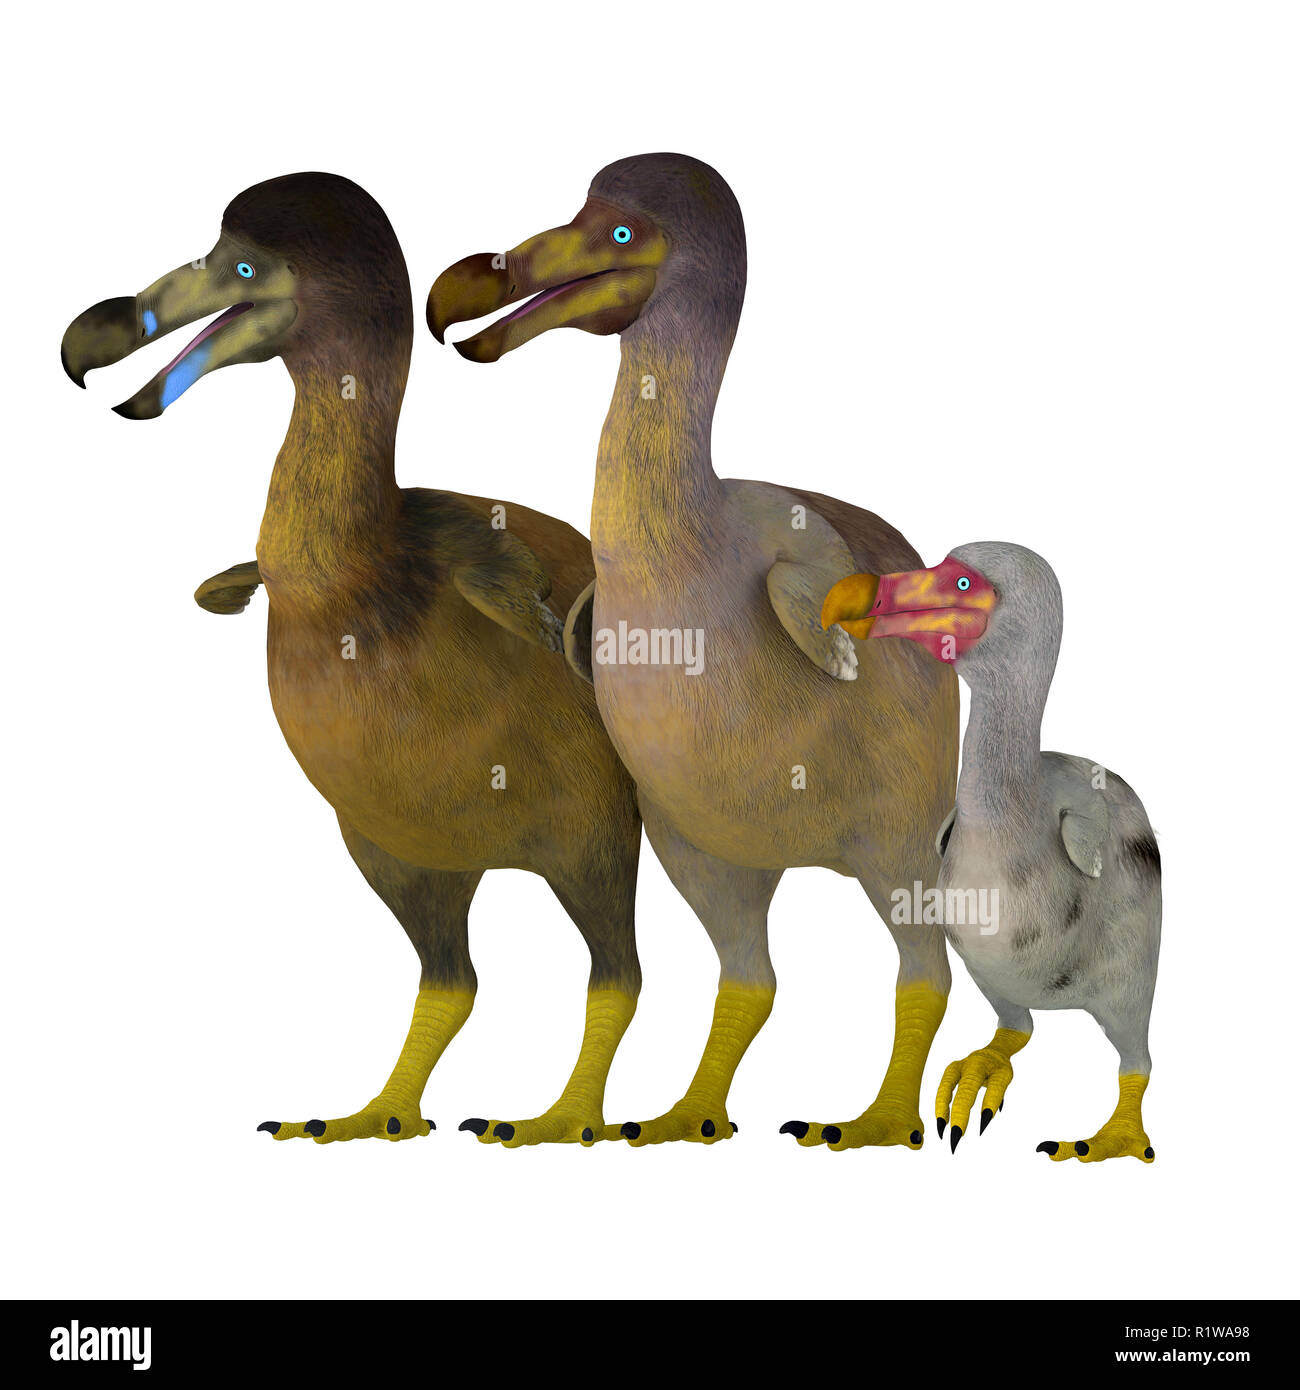 The Dodo is an extinct flightless bird that lived on Mauritius Island in the Indian Ocean near Madagascar. - Stock Image